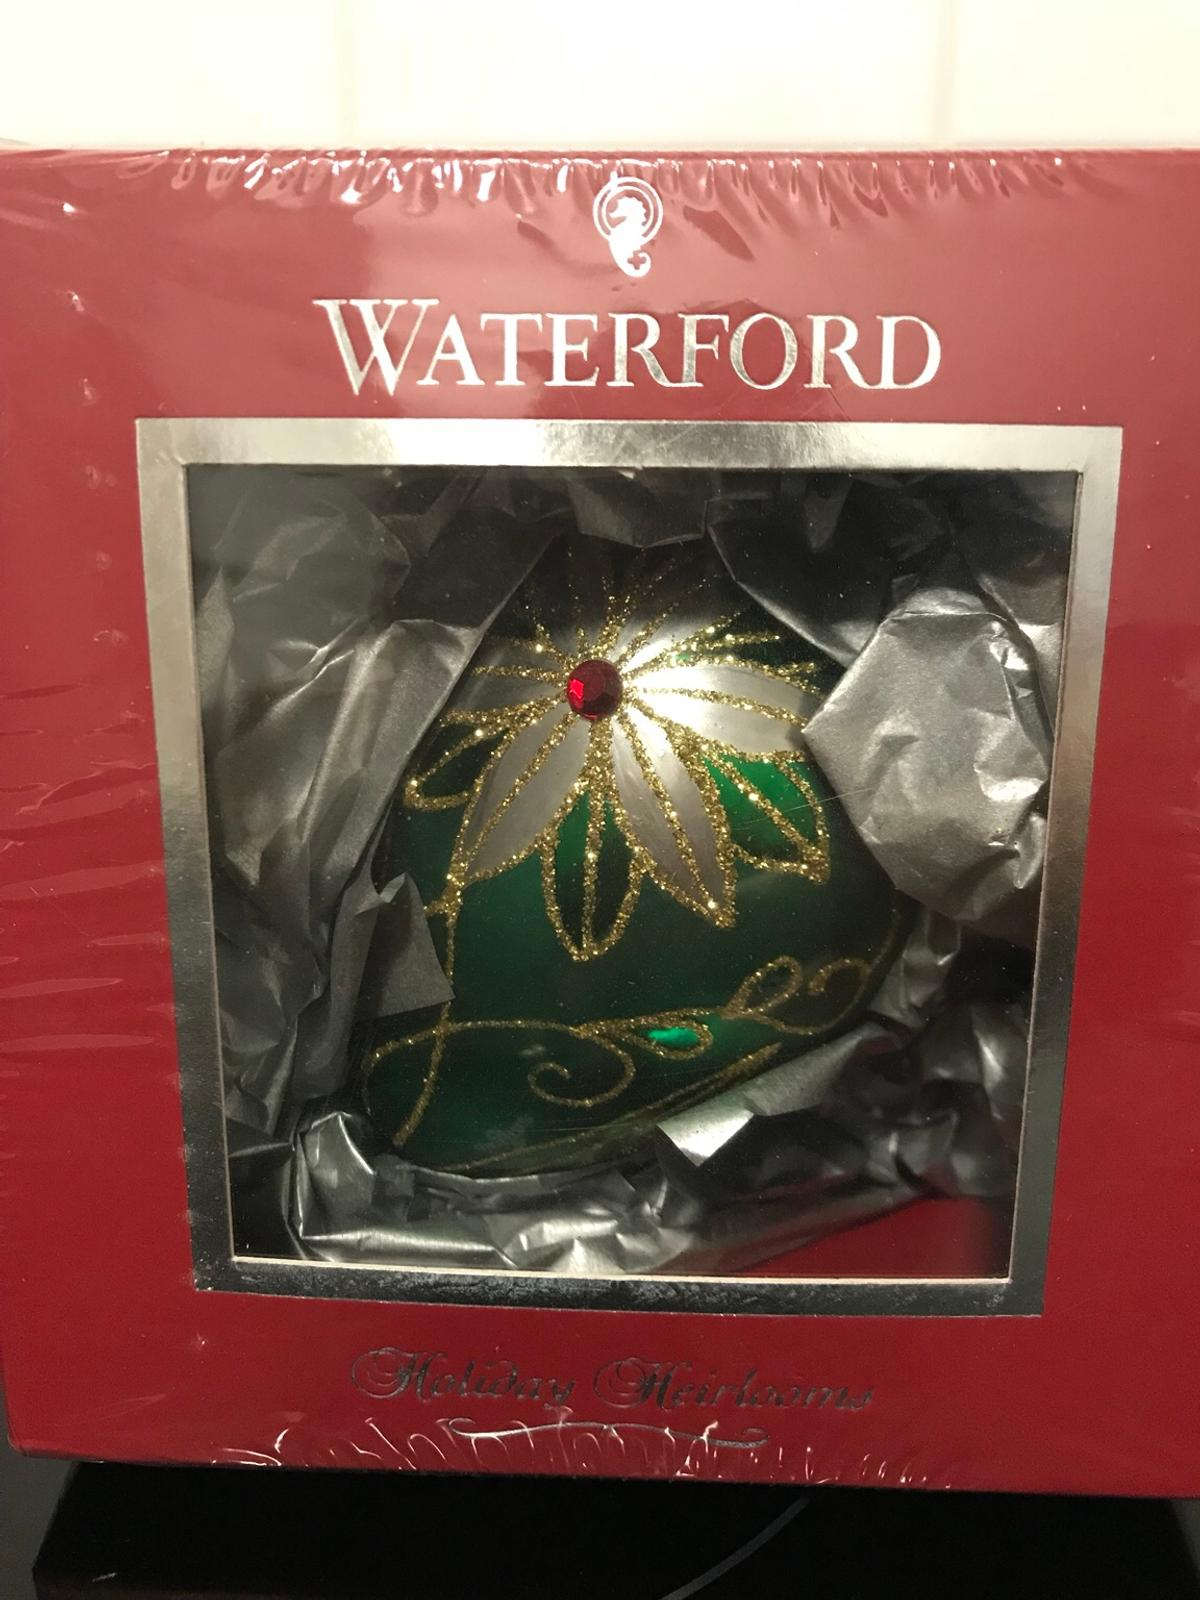 Waterford Christmas Ornaments.Waterford Christmas Ornaments